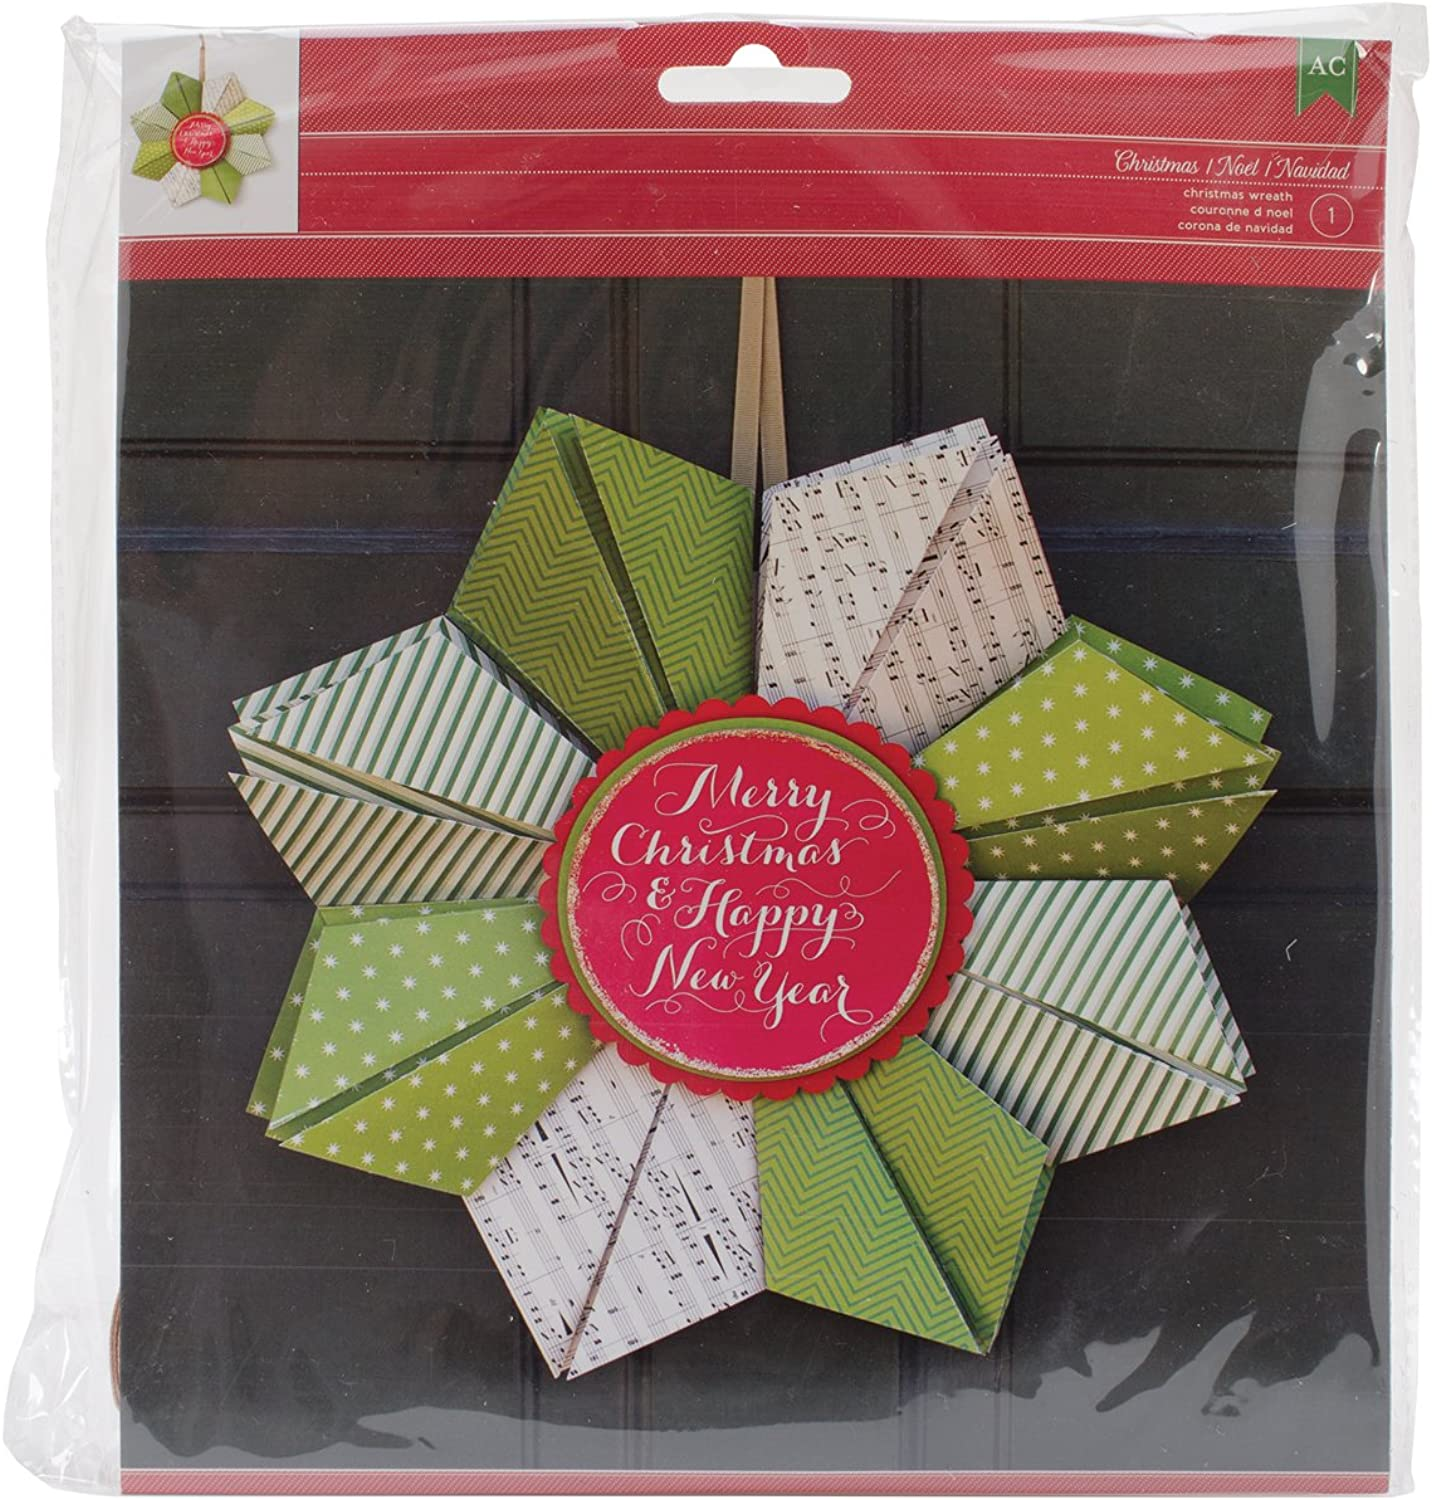 Christmas Cardstock Wreath Kit-Merry Christmas & Happy New Year B00OJFPR5U  | Eleganter Stil